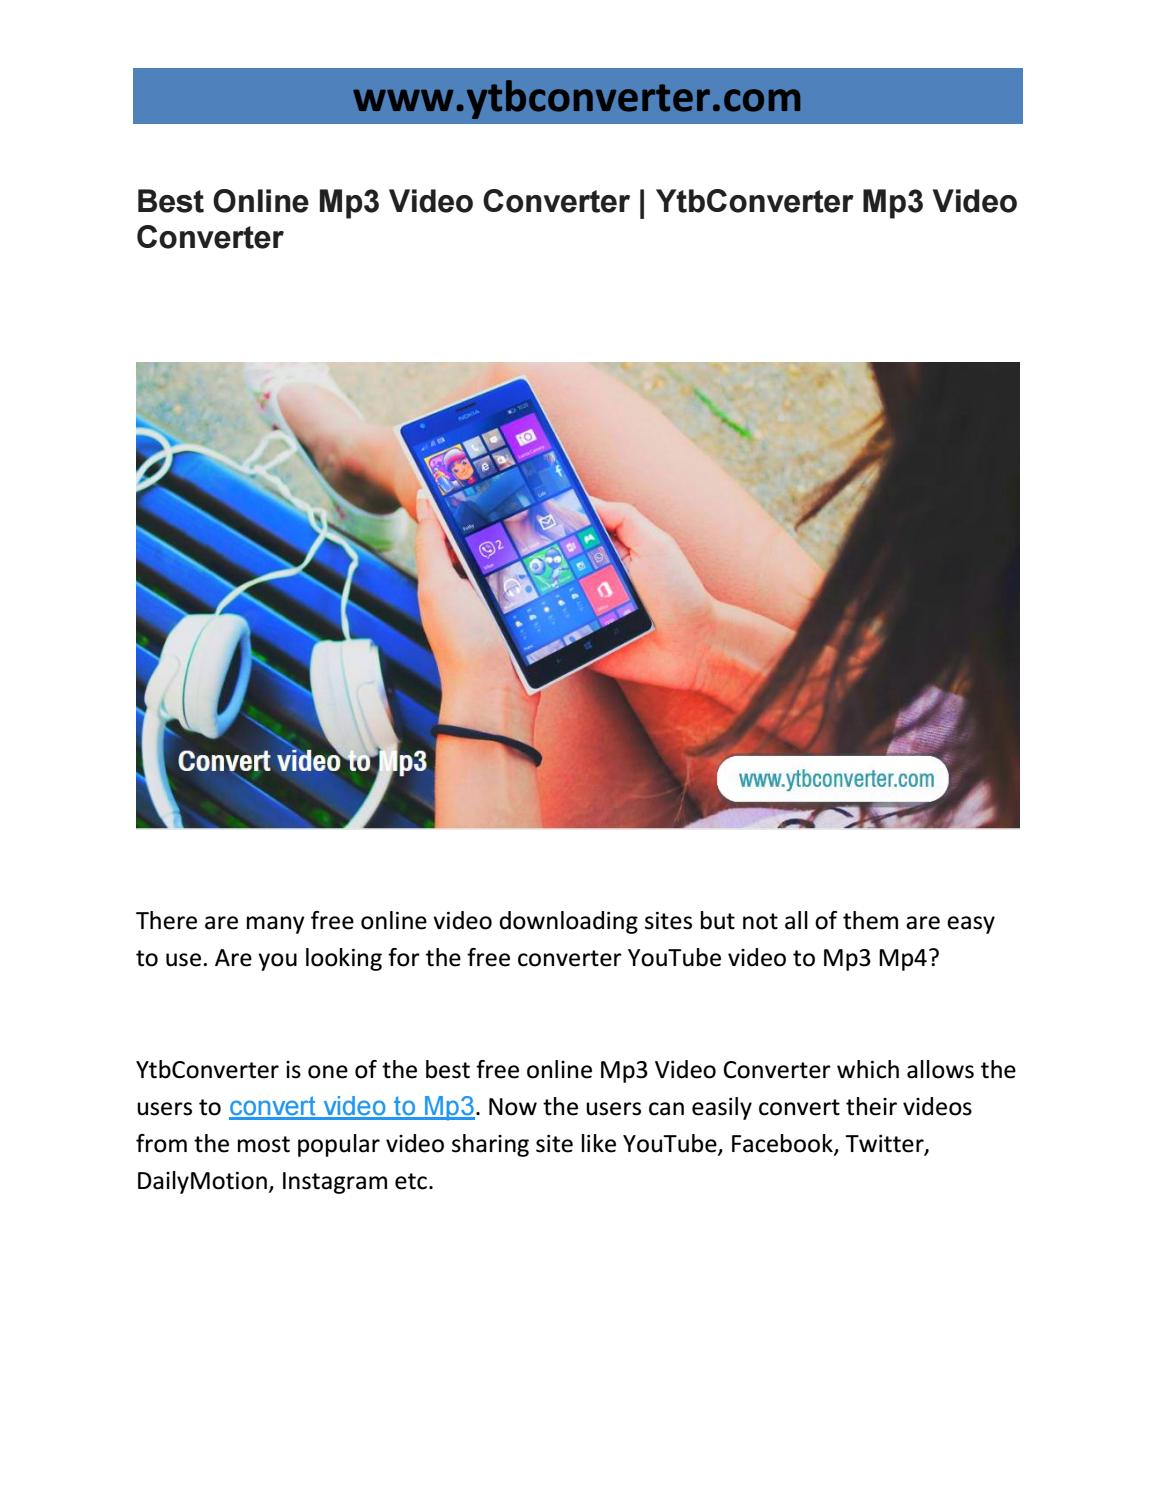 Best Online Mp3 Video Converter | YtbConverter Mp3 Video Converter